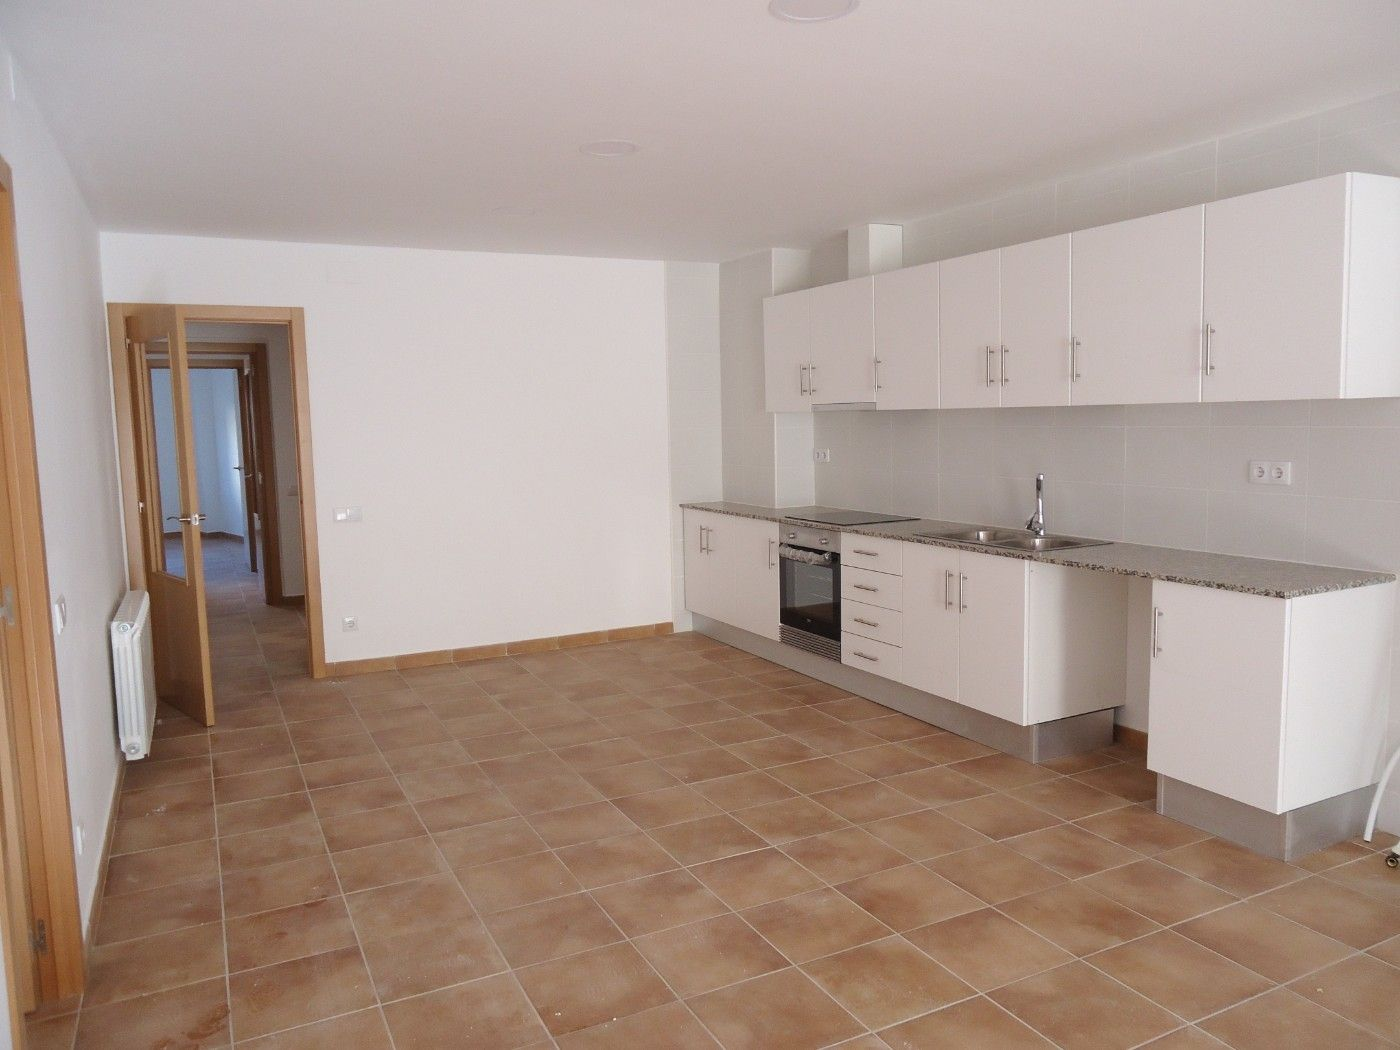 Rent Ground floor  Carrer antoni gaudi. Obra nueva de150m2 y patio 100m2